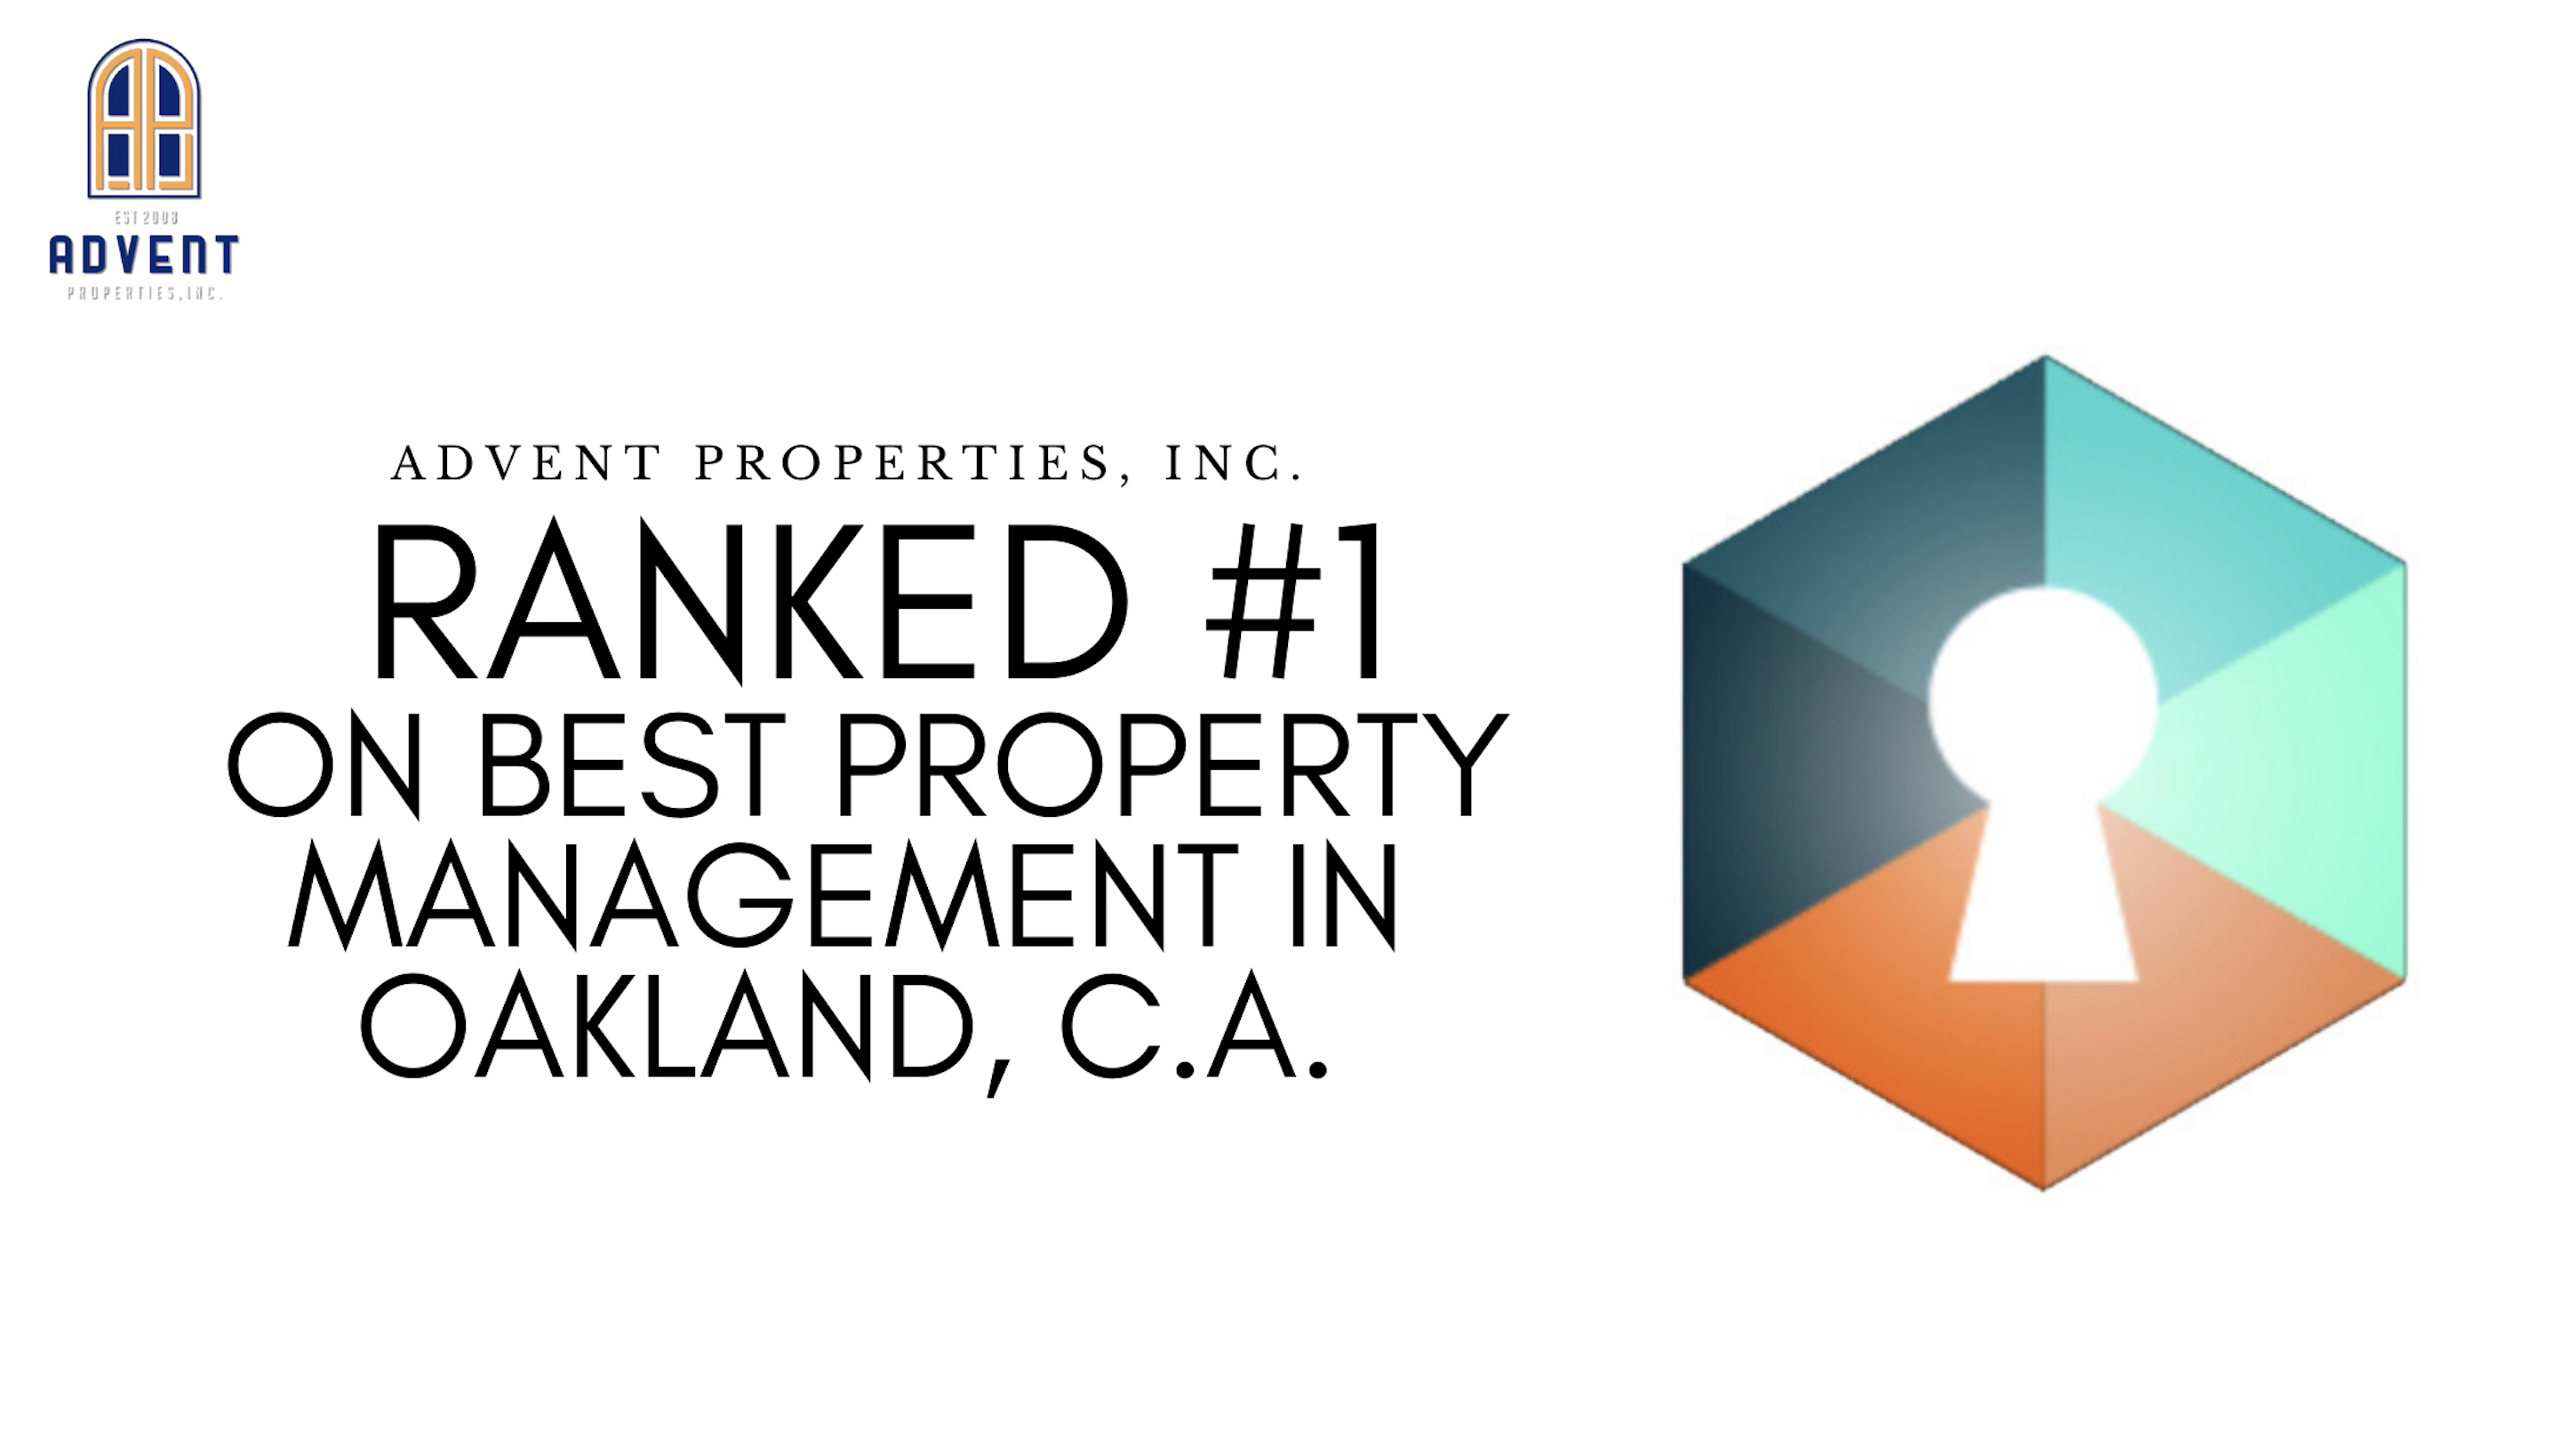 Propertymanagement.com's Best Property Management in Oakland